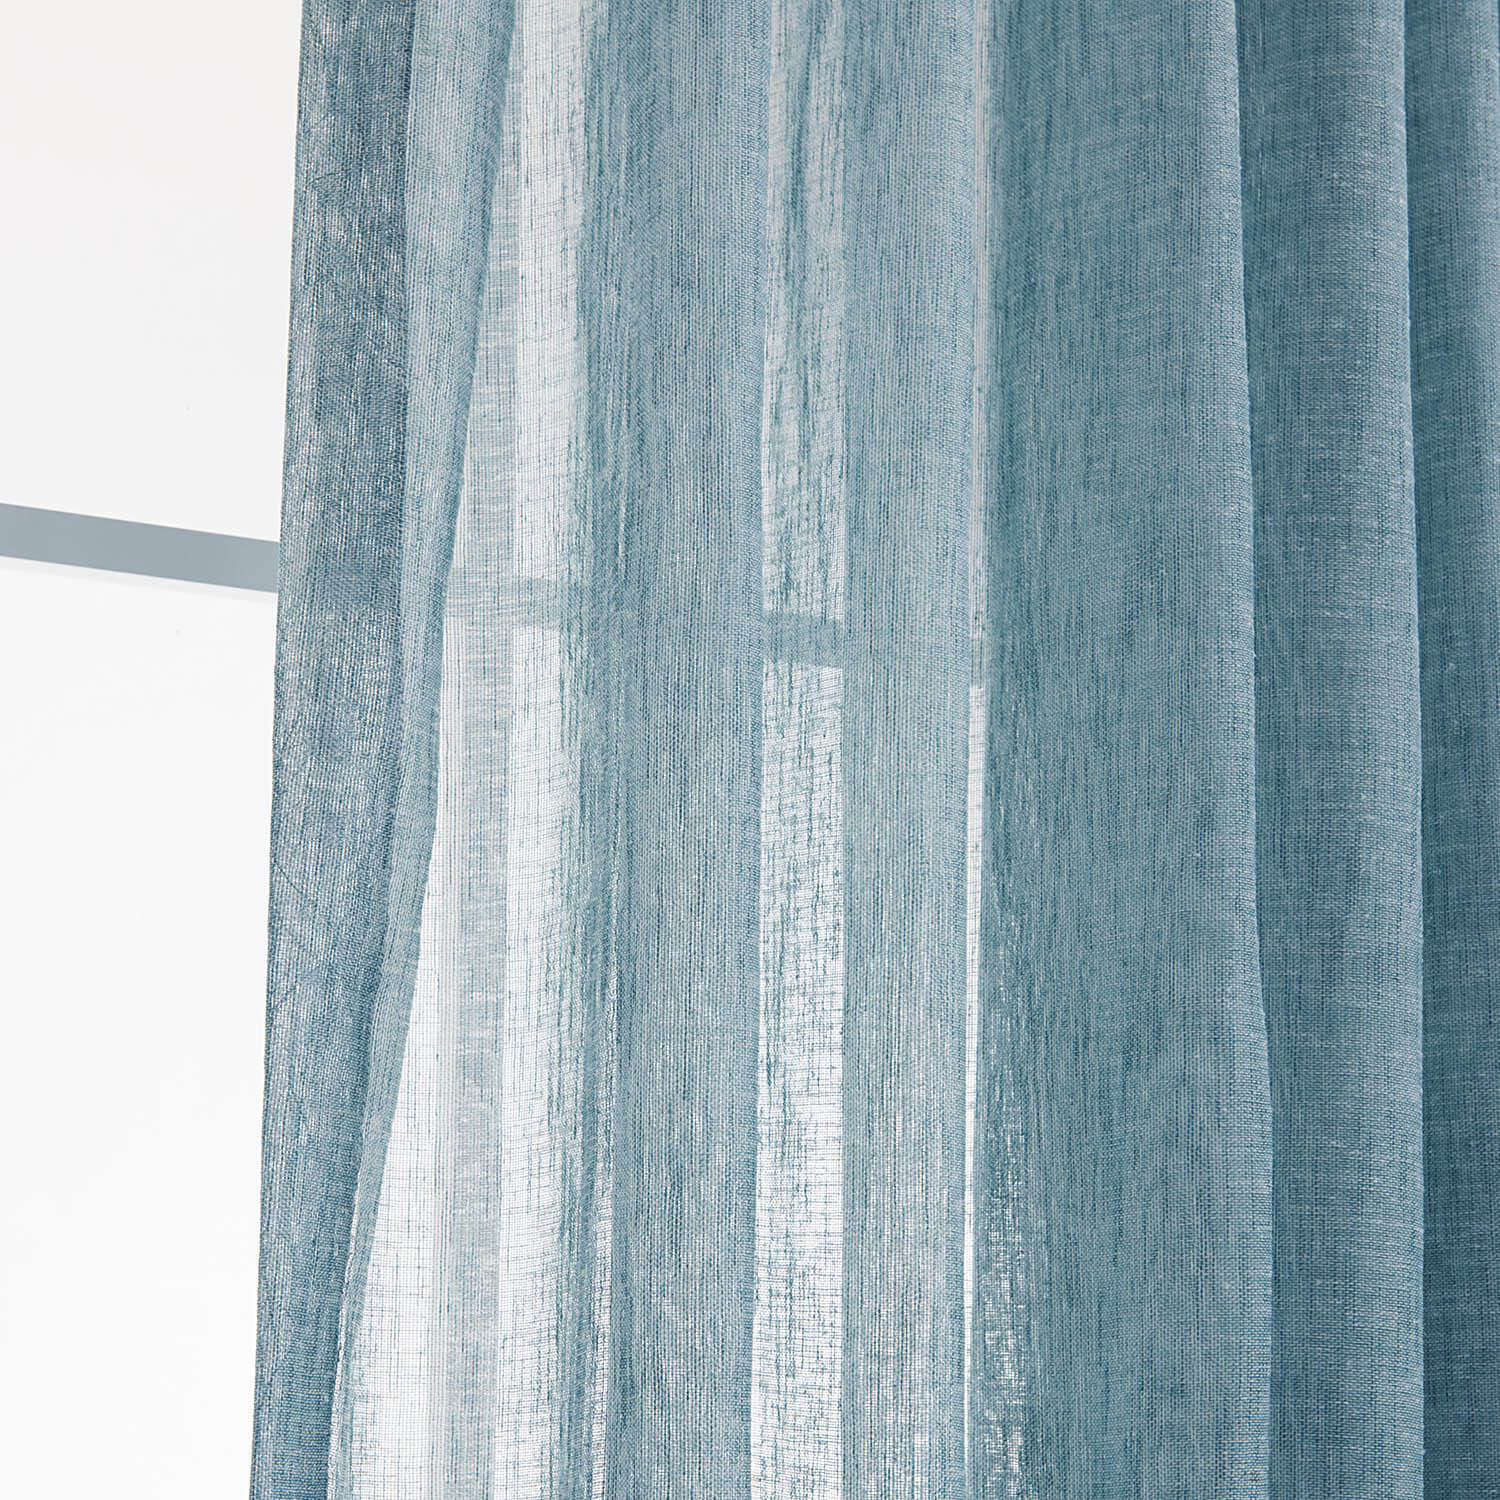 Anady Top Blue Linen Sheer Curtains for Living Room 2 Panels - Anady Top Space Design